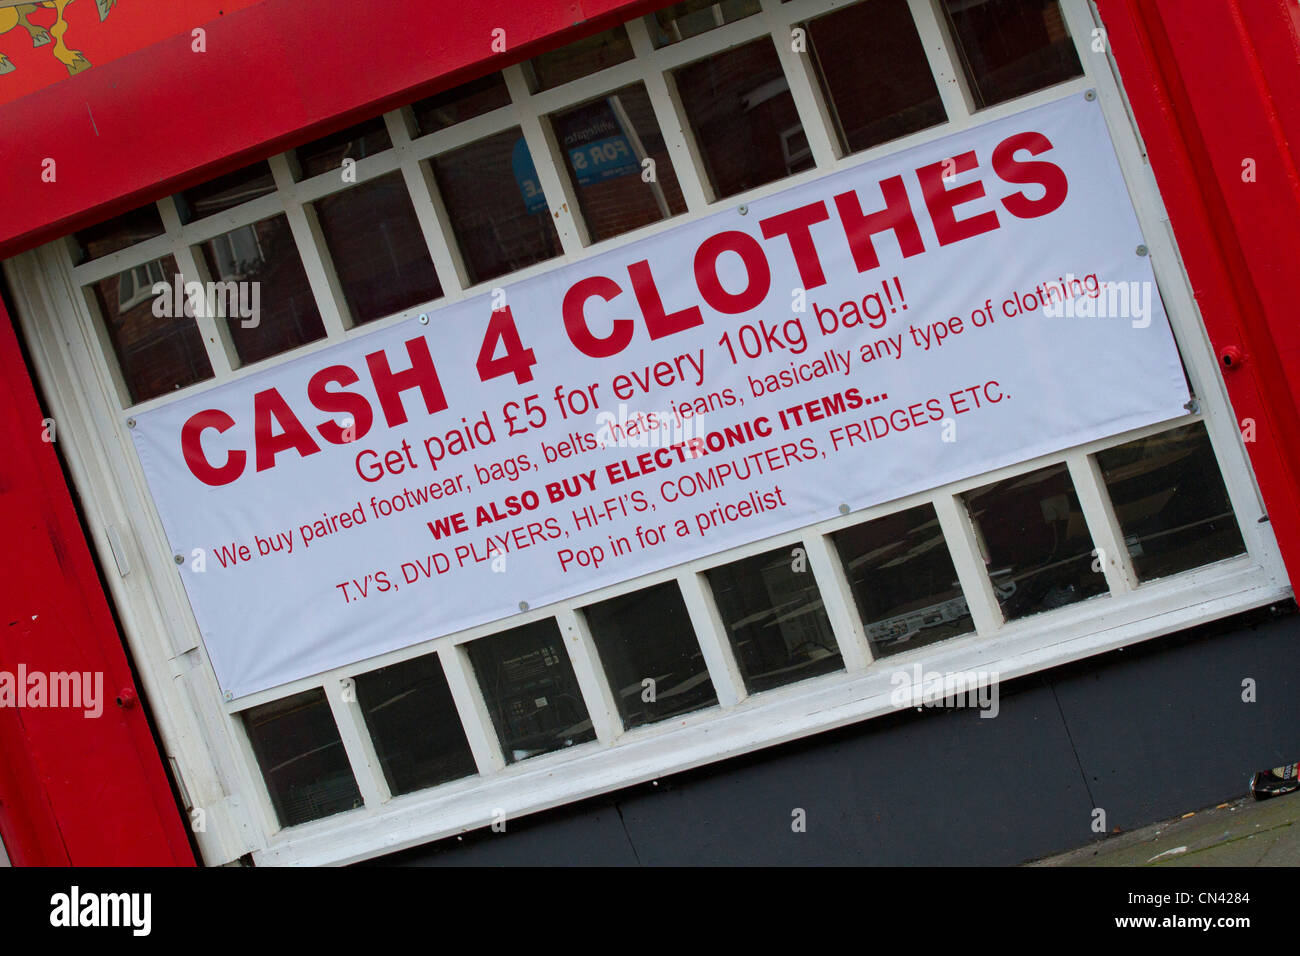 1373631bb9 Cash for clothes shops in various places around Liverpool - Stock Image